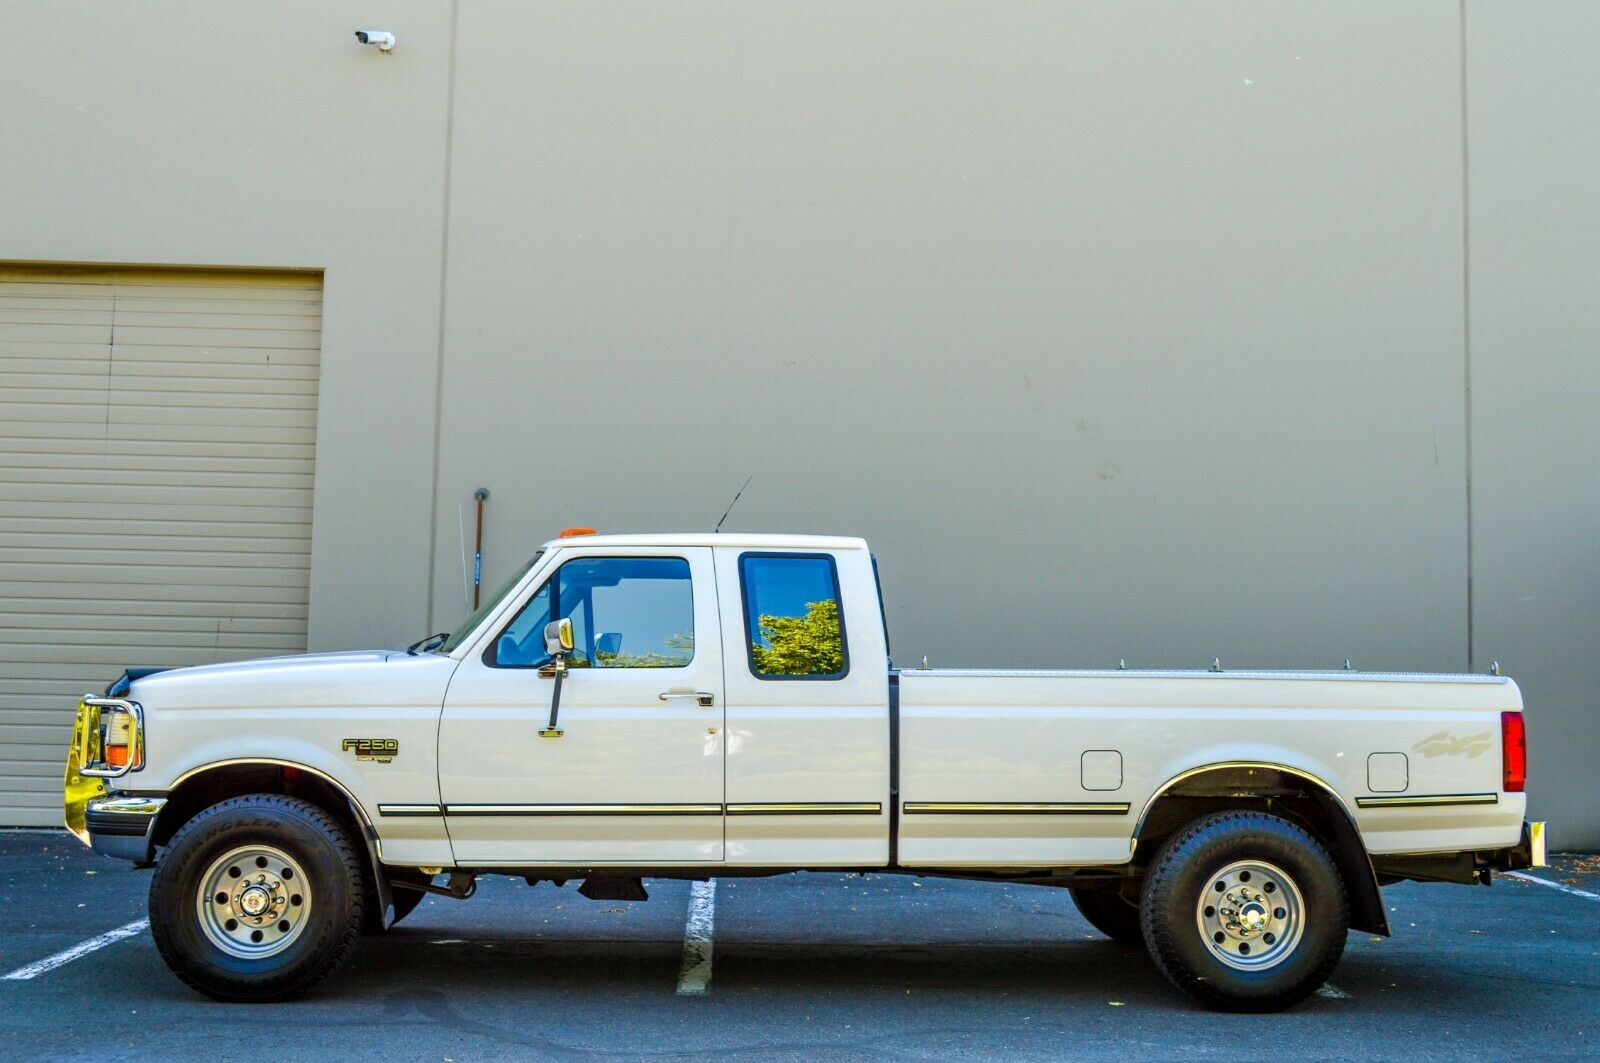 1995 FORD F250 SUPER CAB 4X4 7.3L DIESEL 5-SPEED MANUAL ONLY 64K MILES! OBS!